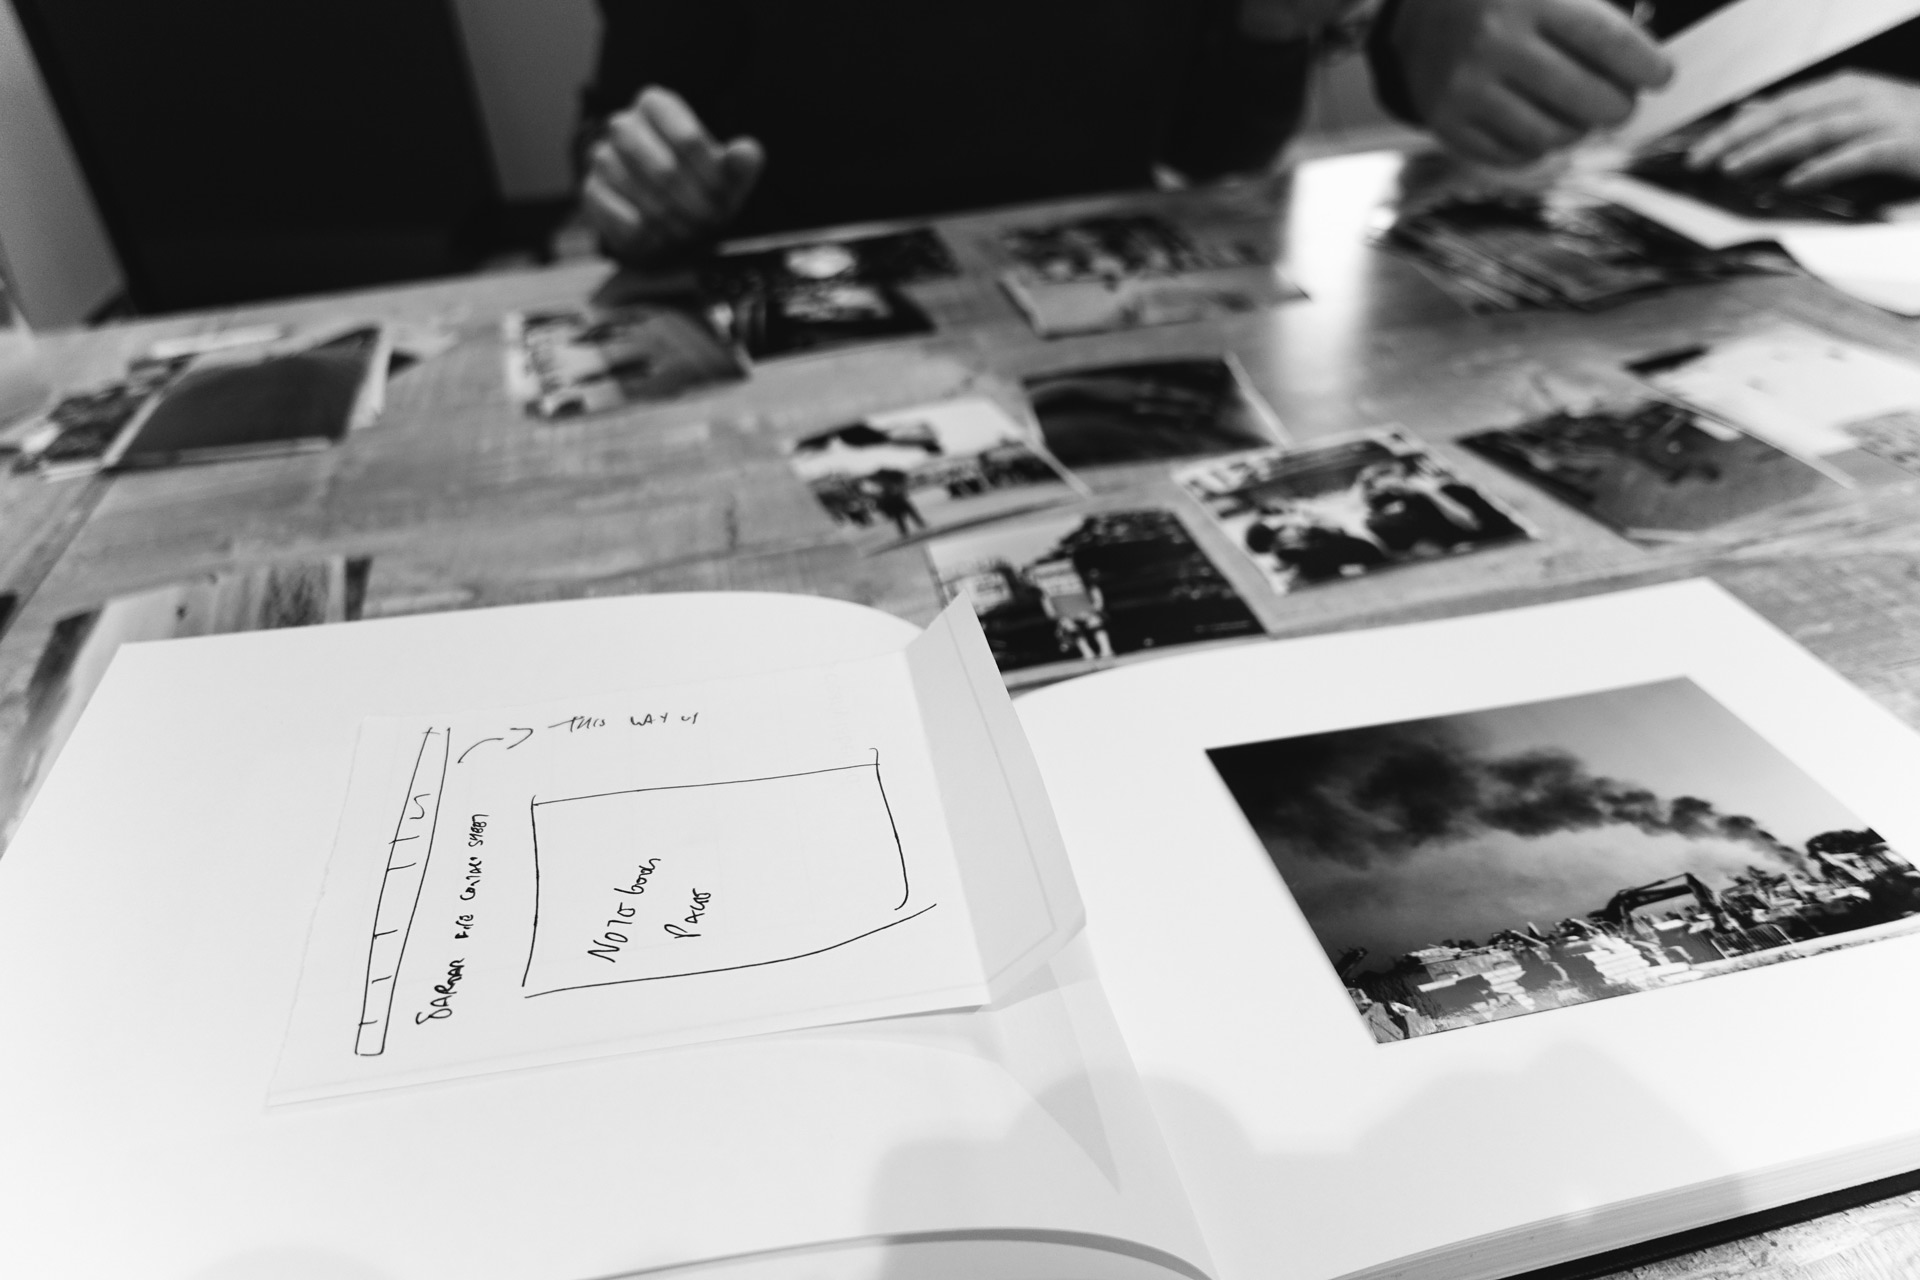 The Summer of '20 Zine: Curation Session by Simon King